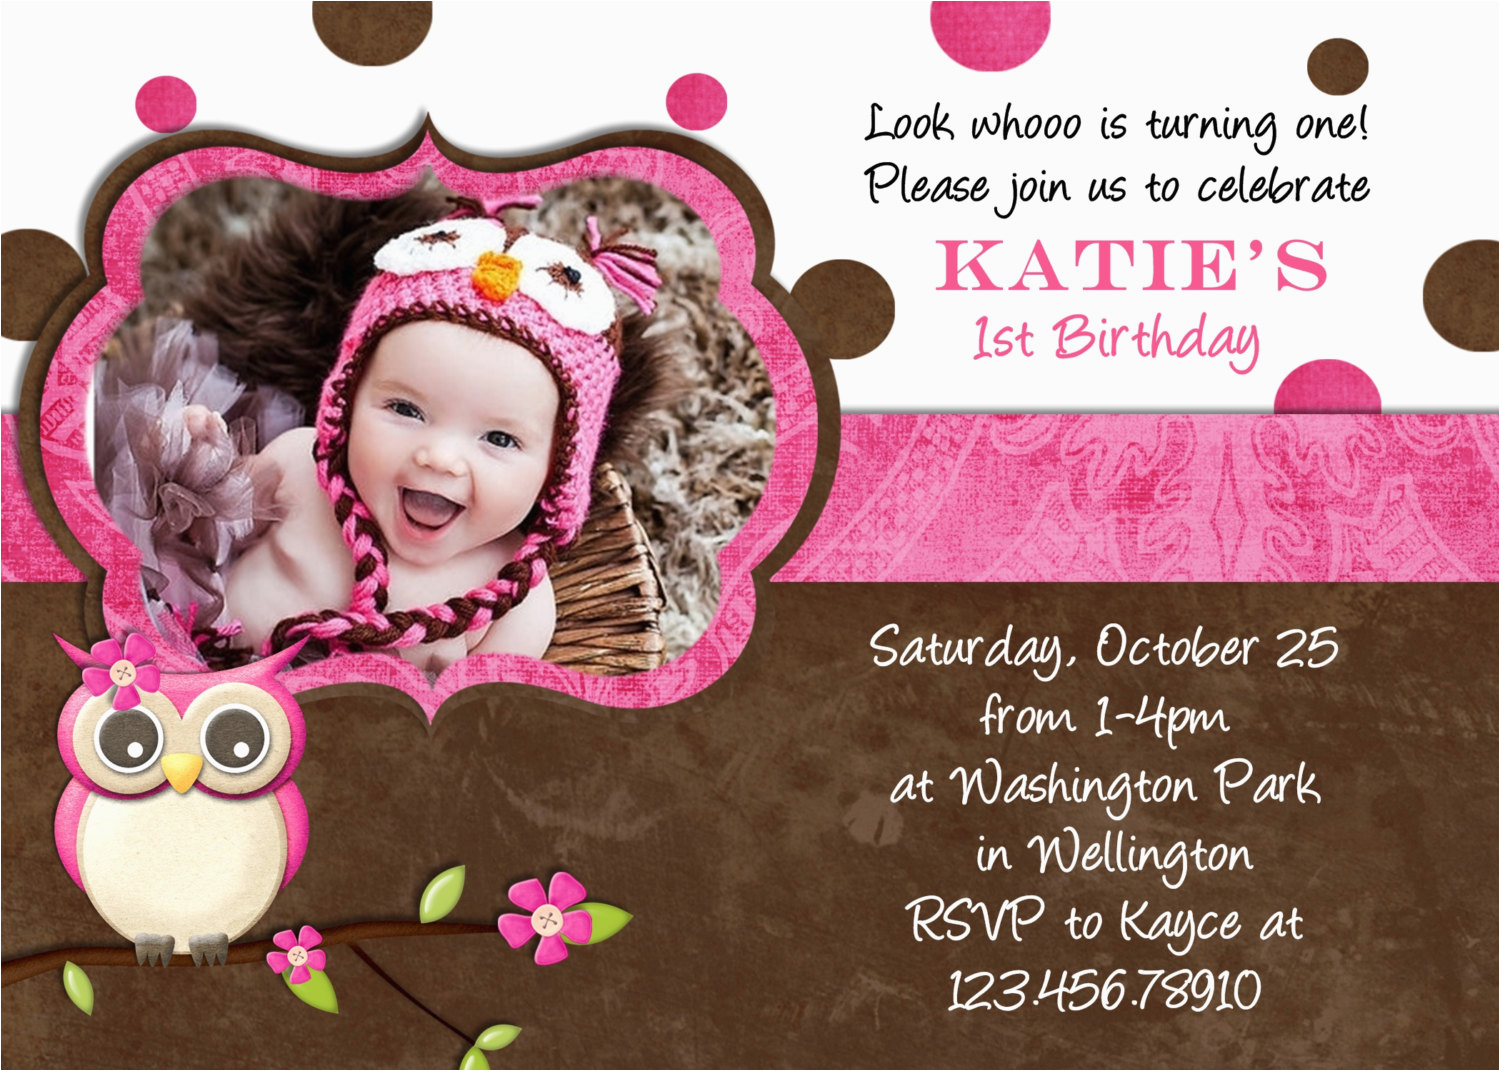 1st Birthday Invitation Card Maker Online Free Nice Ideas Cards Design Brown Color